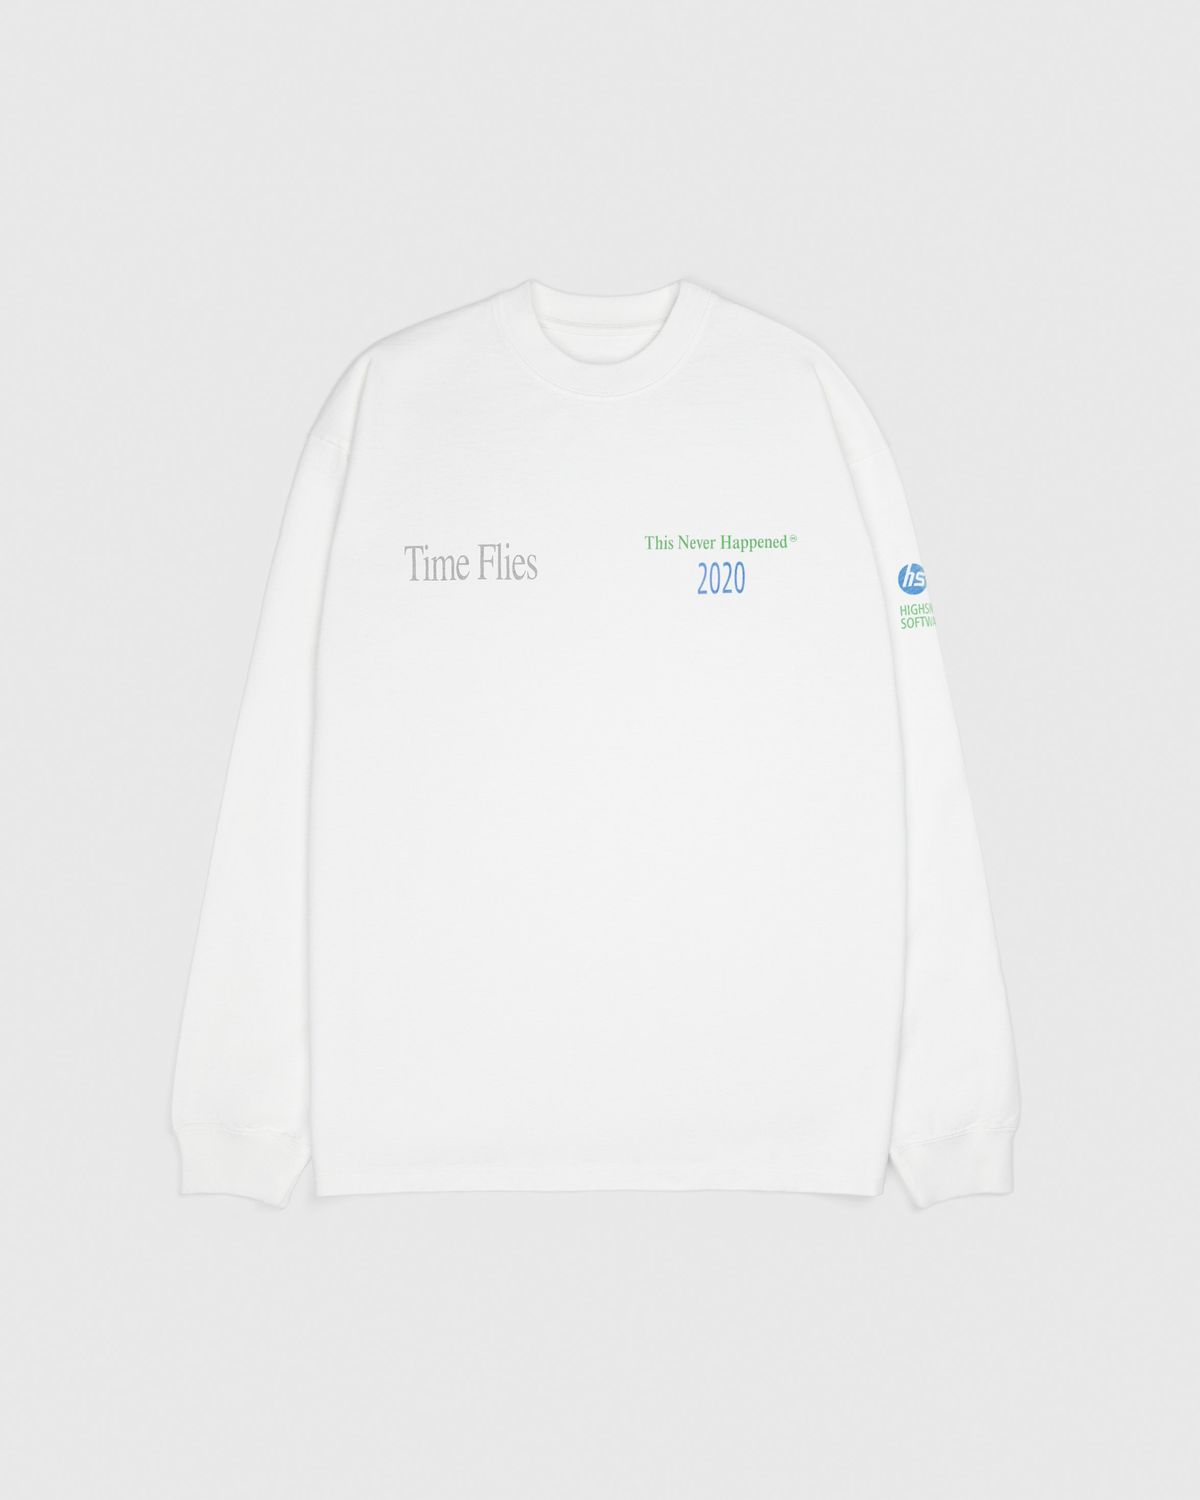 This Never Happened - Tech Convention T-Shirt White - Image 2